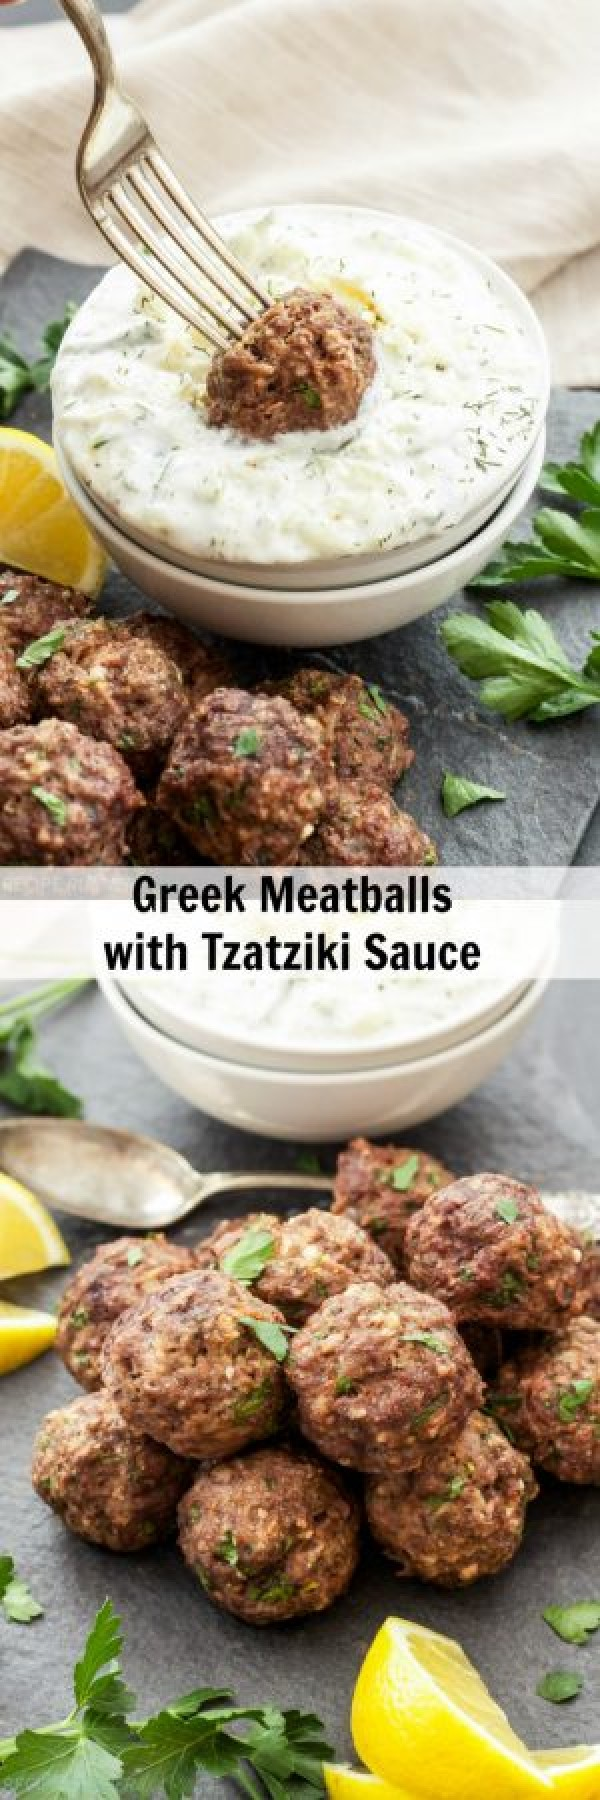 Get the recipe Greek Meatballs with Tzatziki Sauce @recipes_to_go